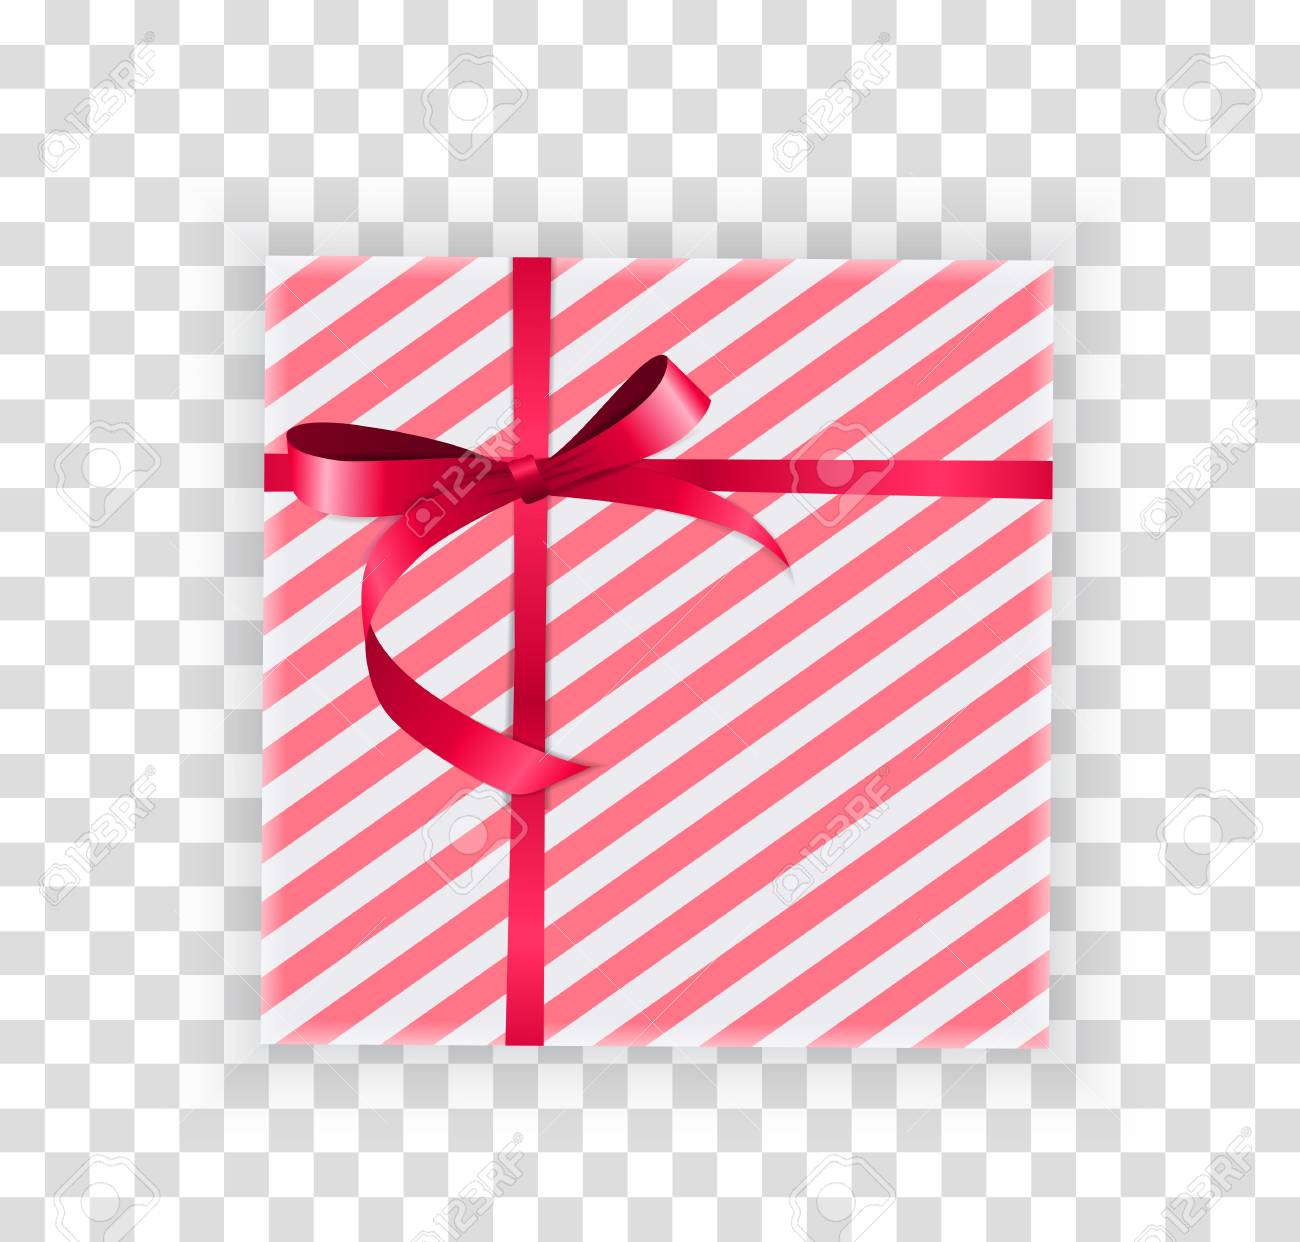 Abstract Christmas And New Year Gift Box On Transparent Background Royalty Free Cliparts Vectors And Stock Illustration Image 109361381